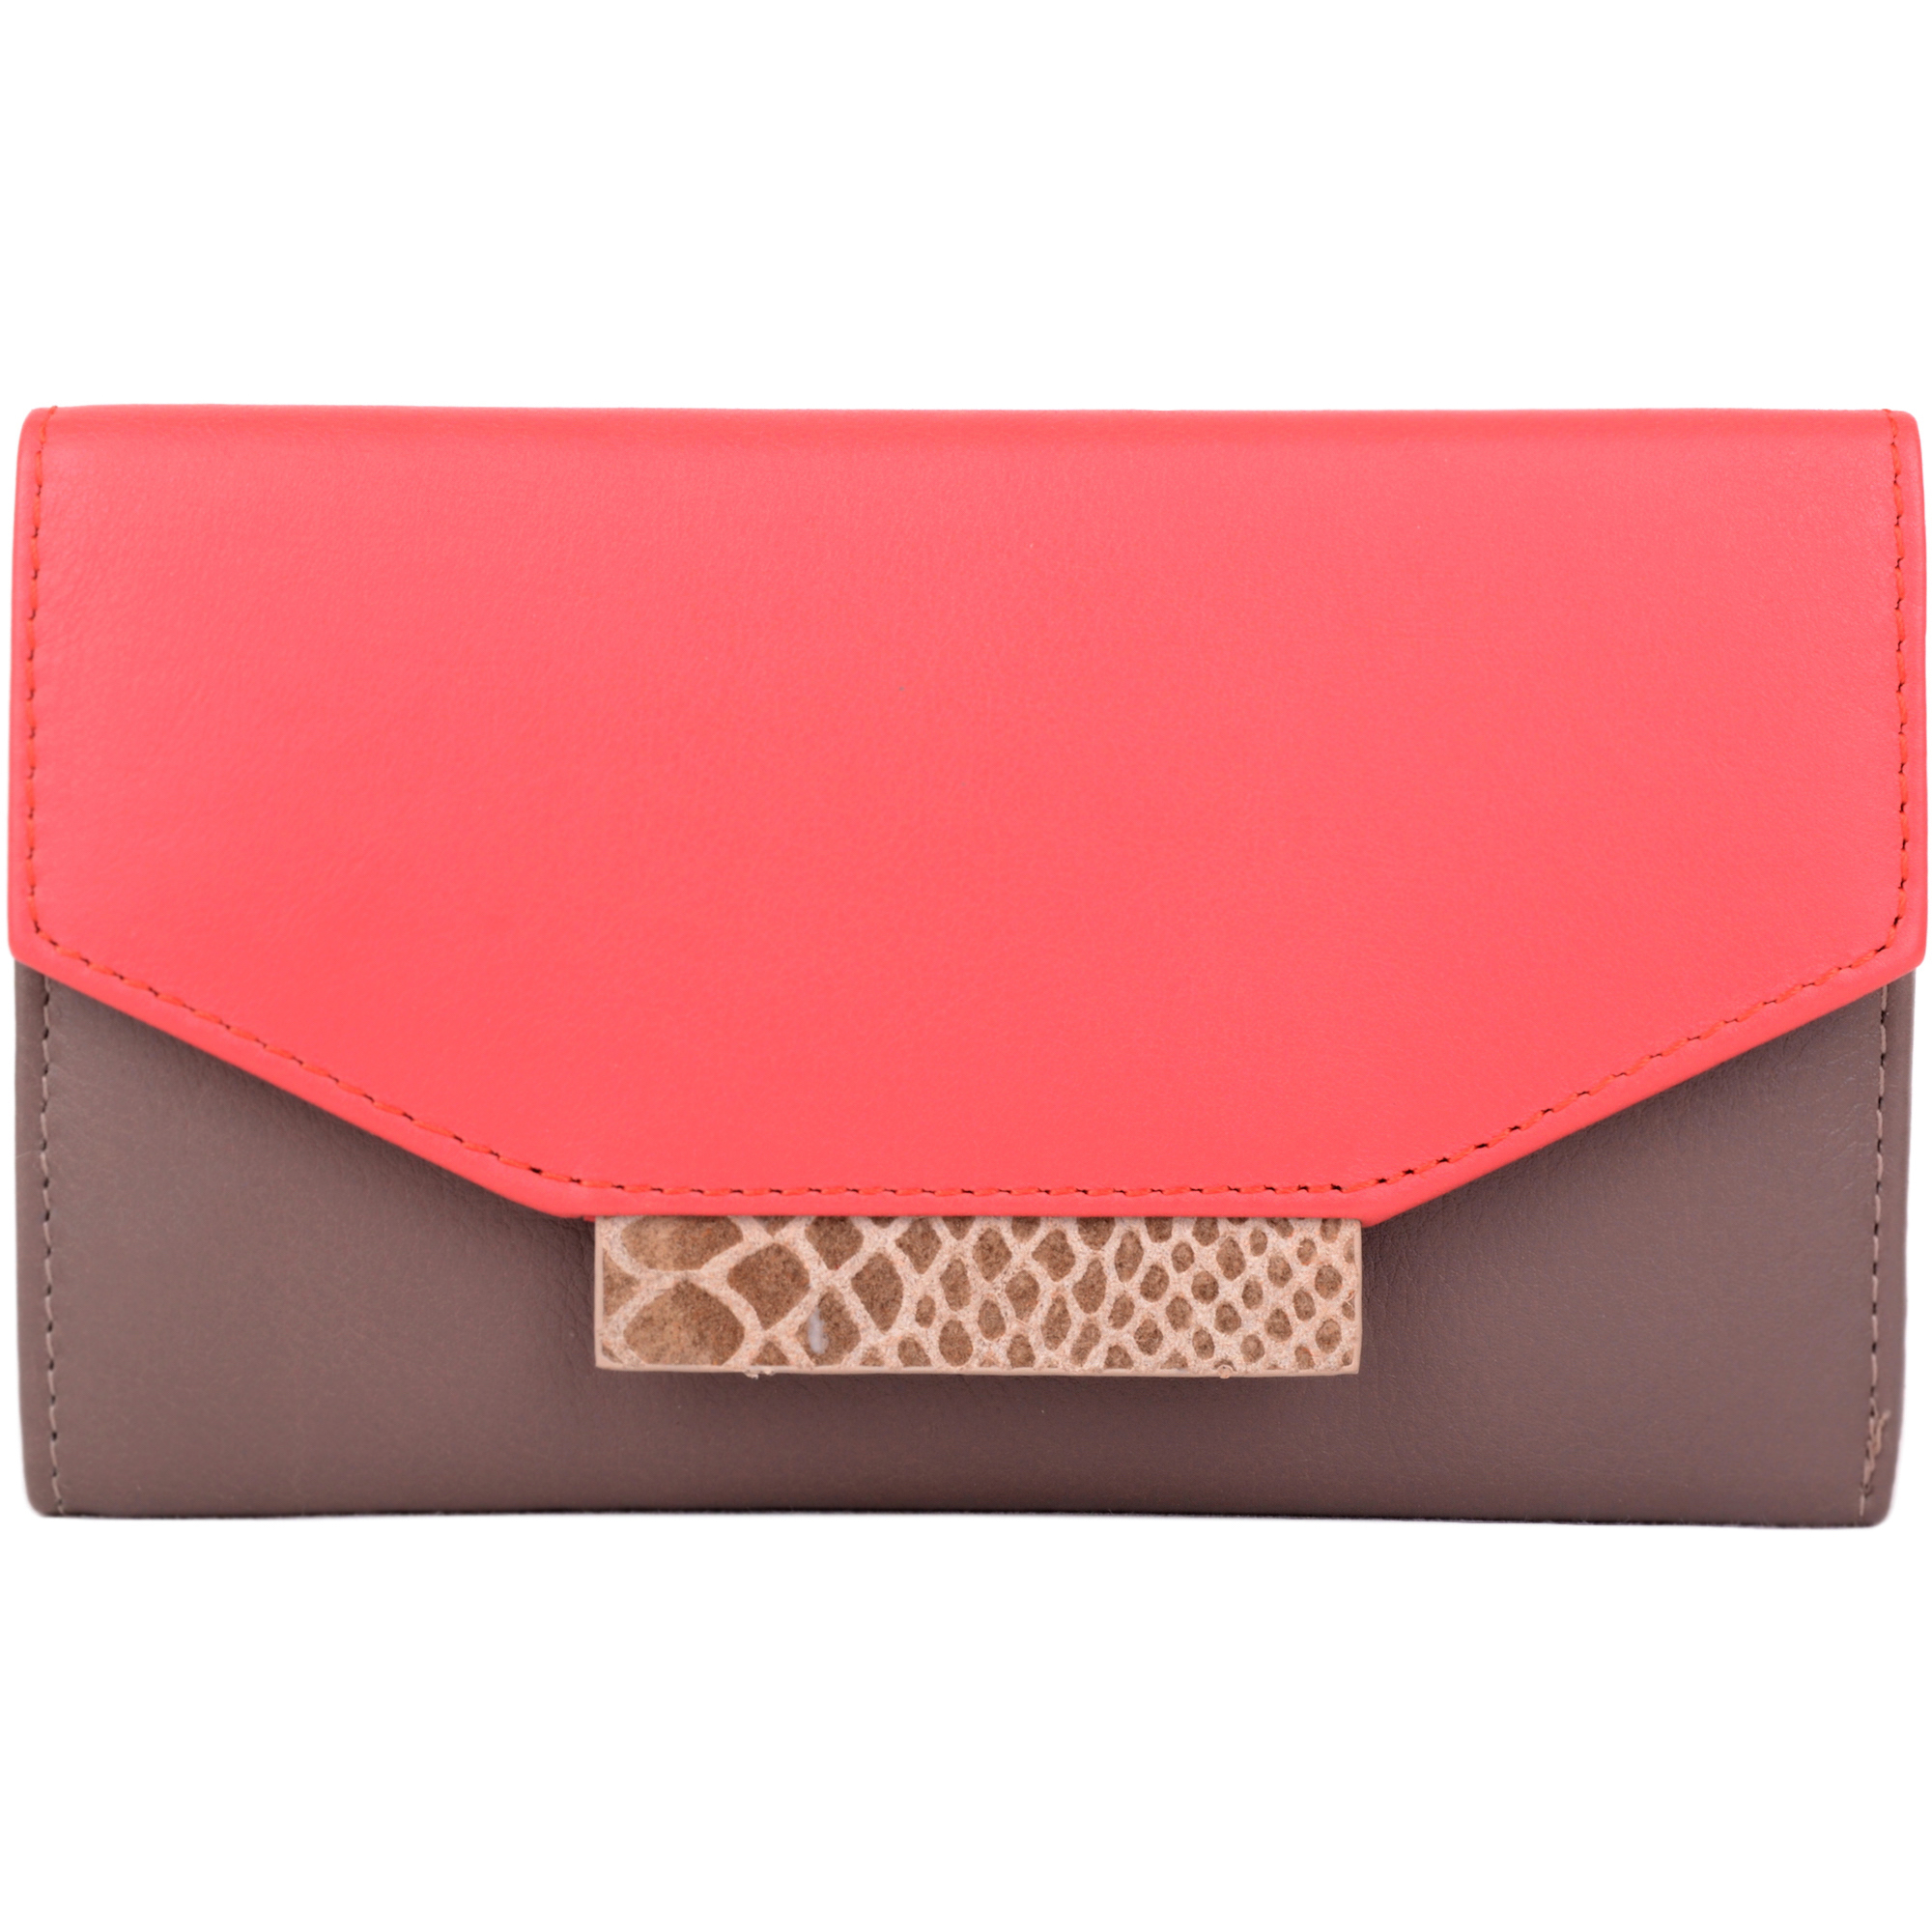 Super Soft Leather Purse with Multiple Features - Darcy - Taupe